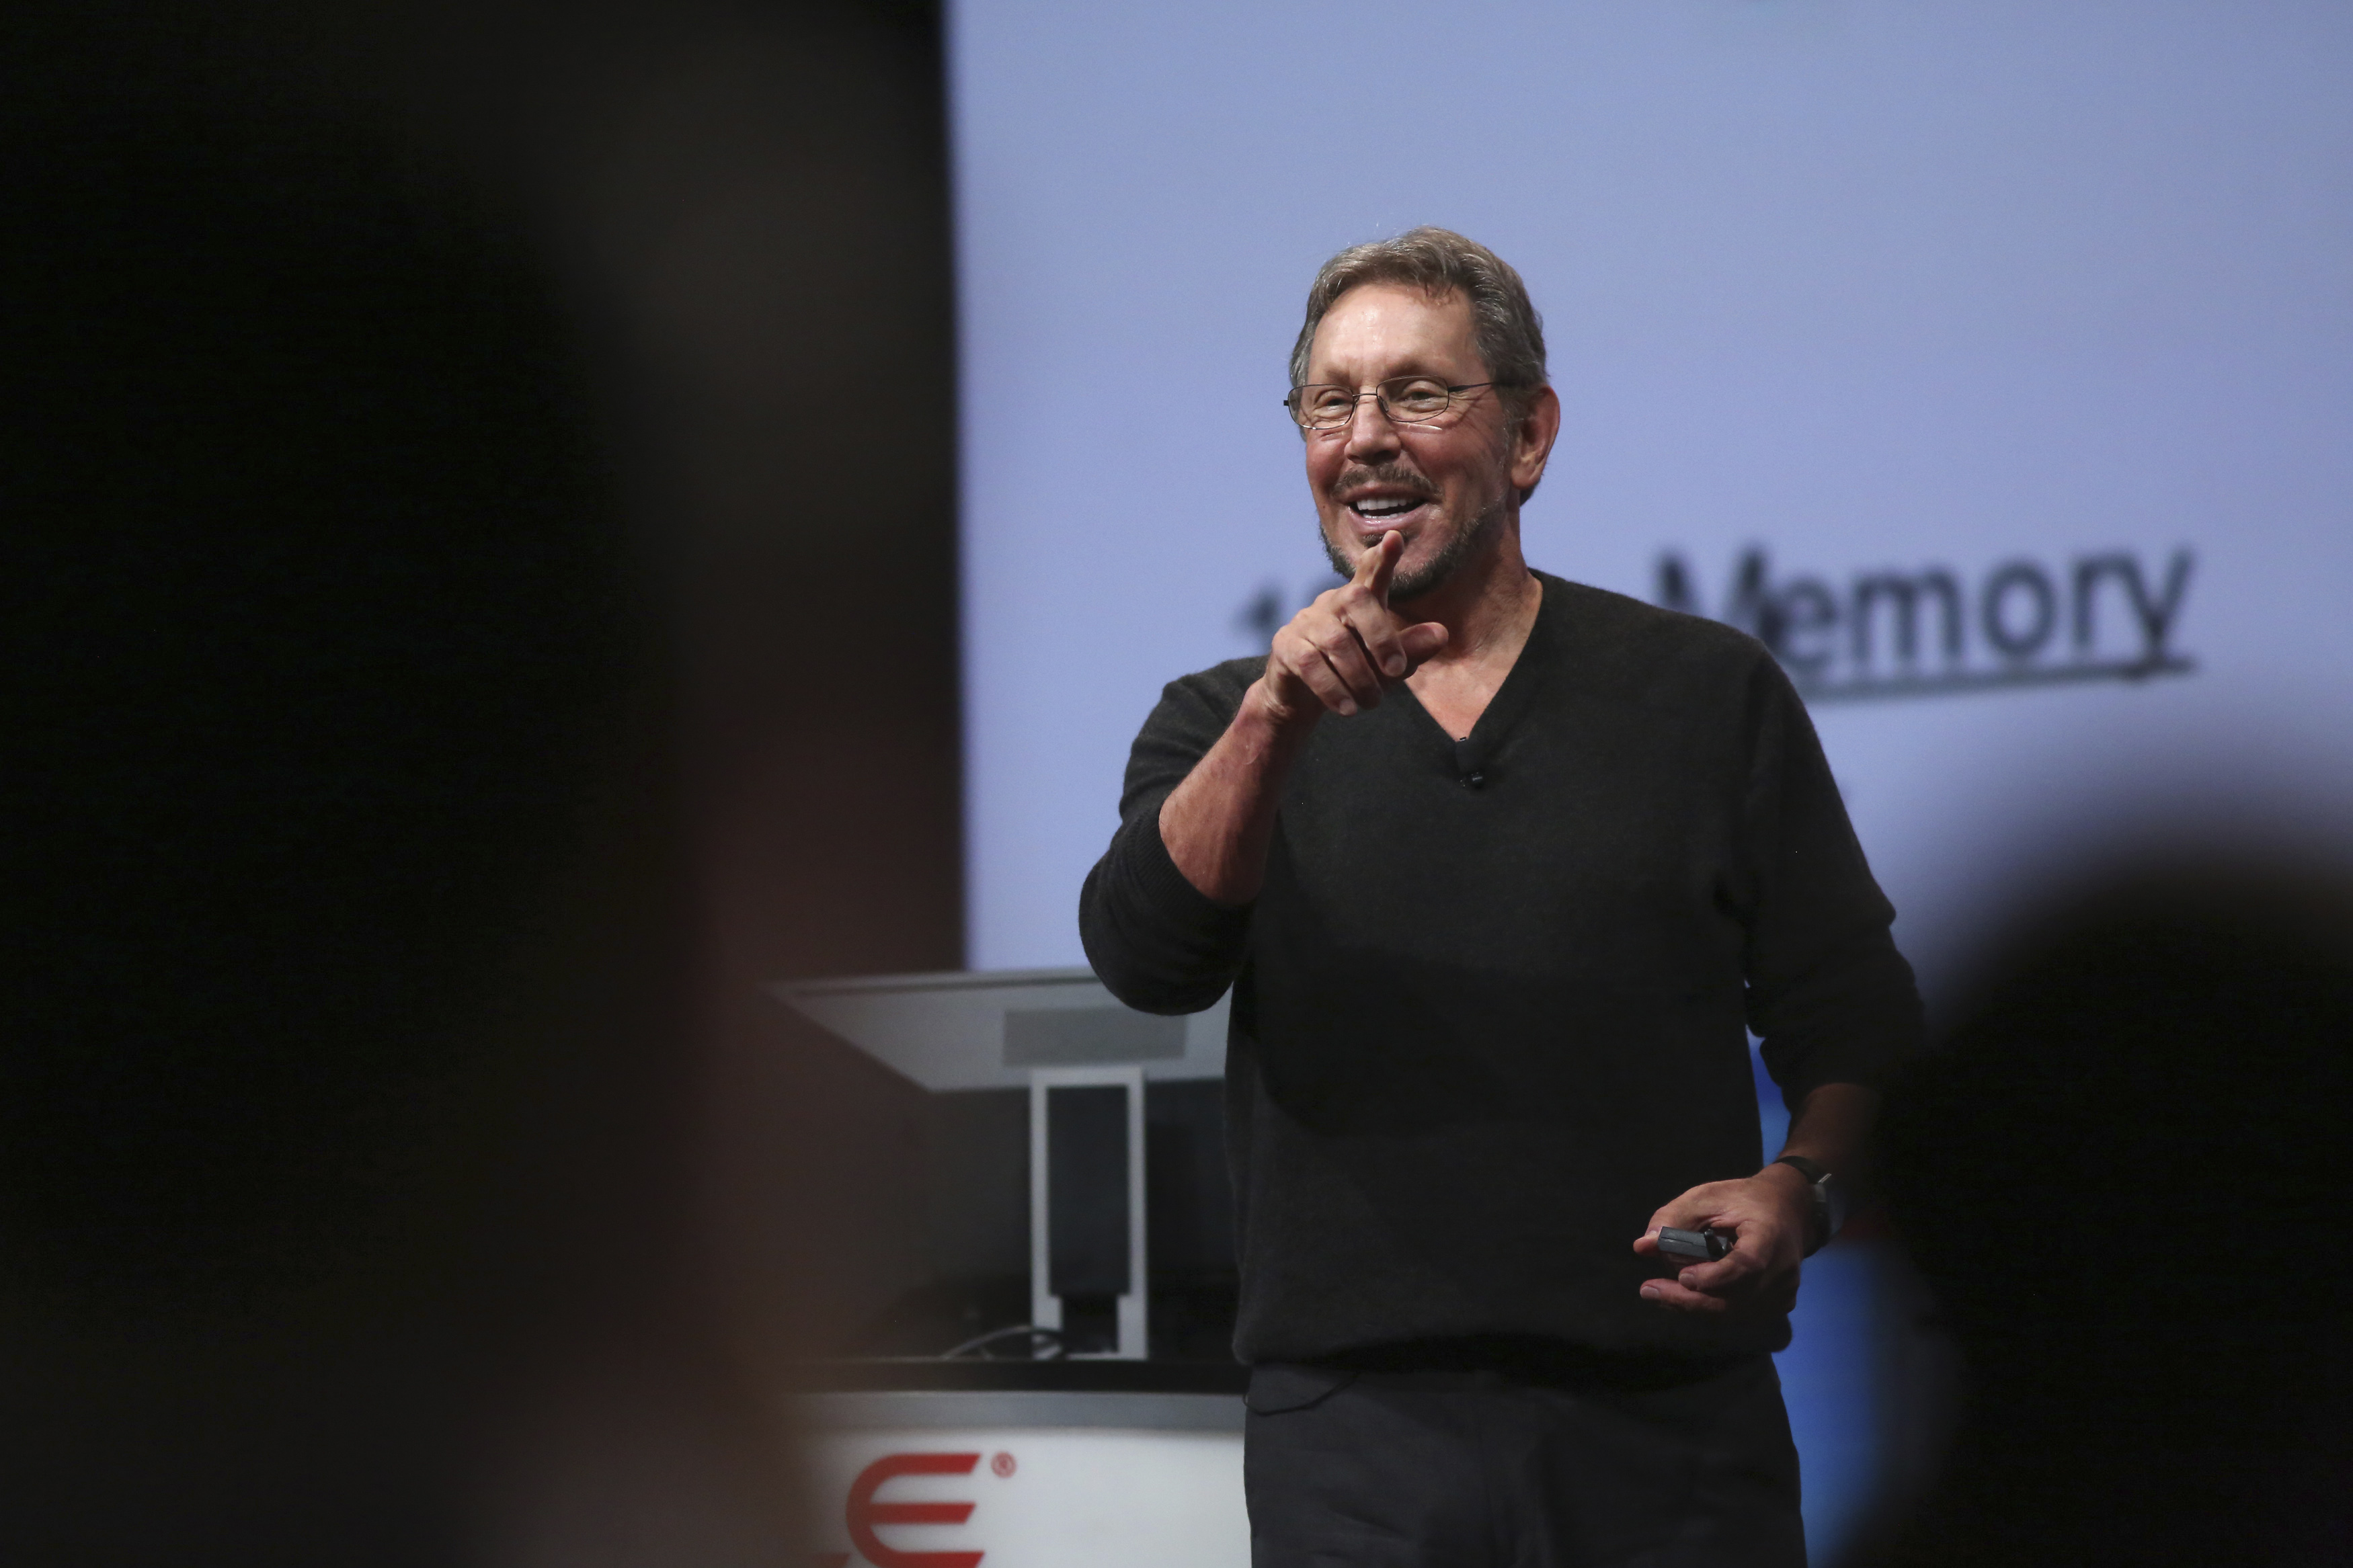 Oracle's Executive Chairman of the Board and Chief Technology Officer Larry Ellison gestures during his keynote speech at Oracle OpenWorld in San Francisco, California Sept. 30, 2014. REUTERS/Robert Galbraith